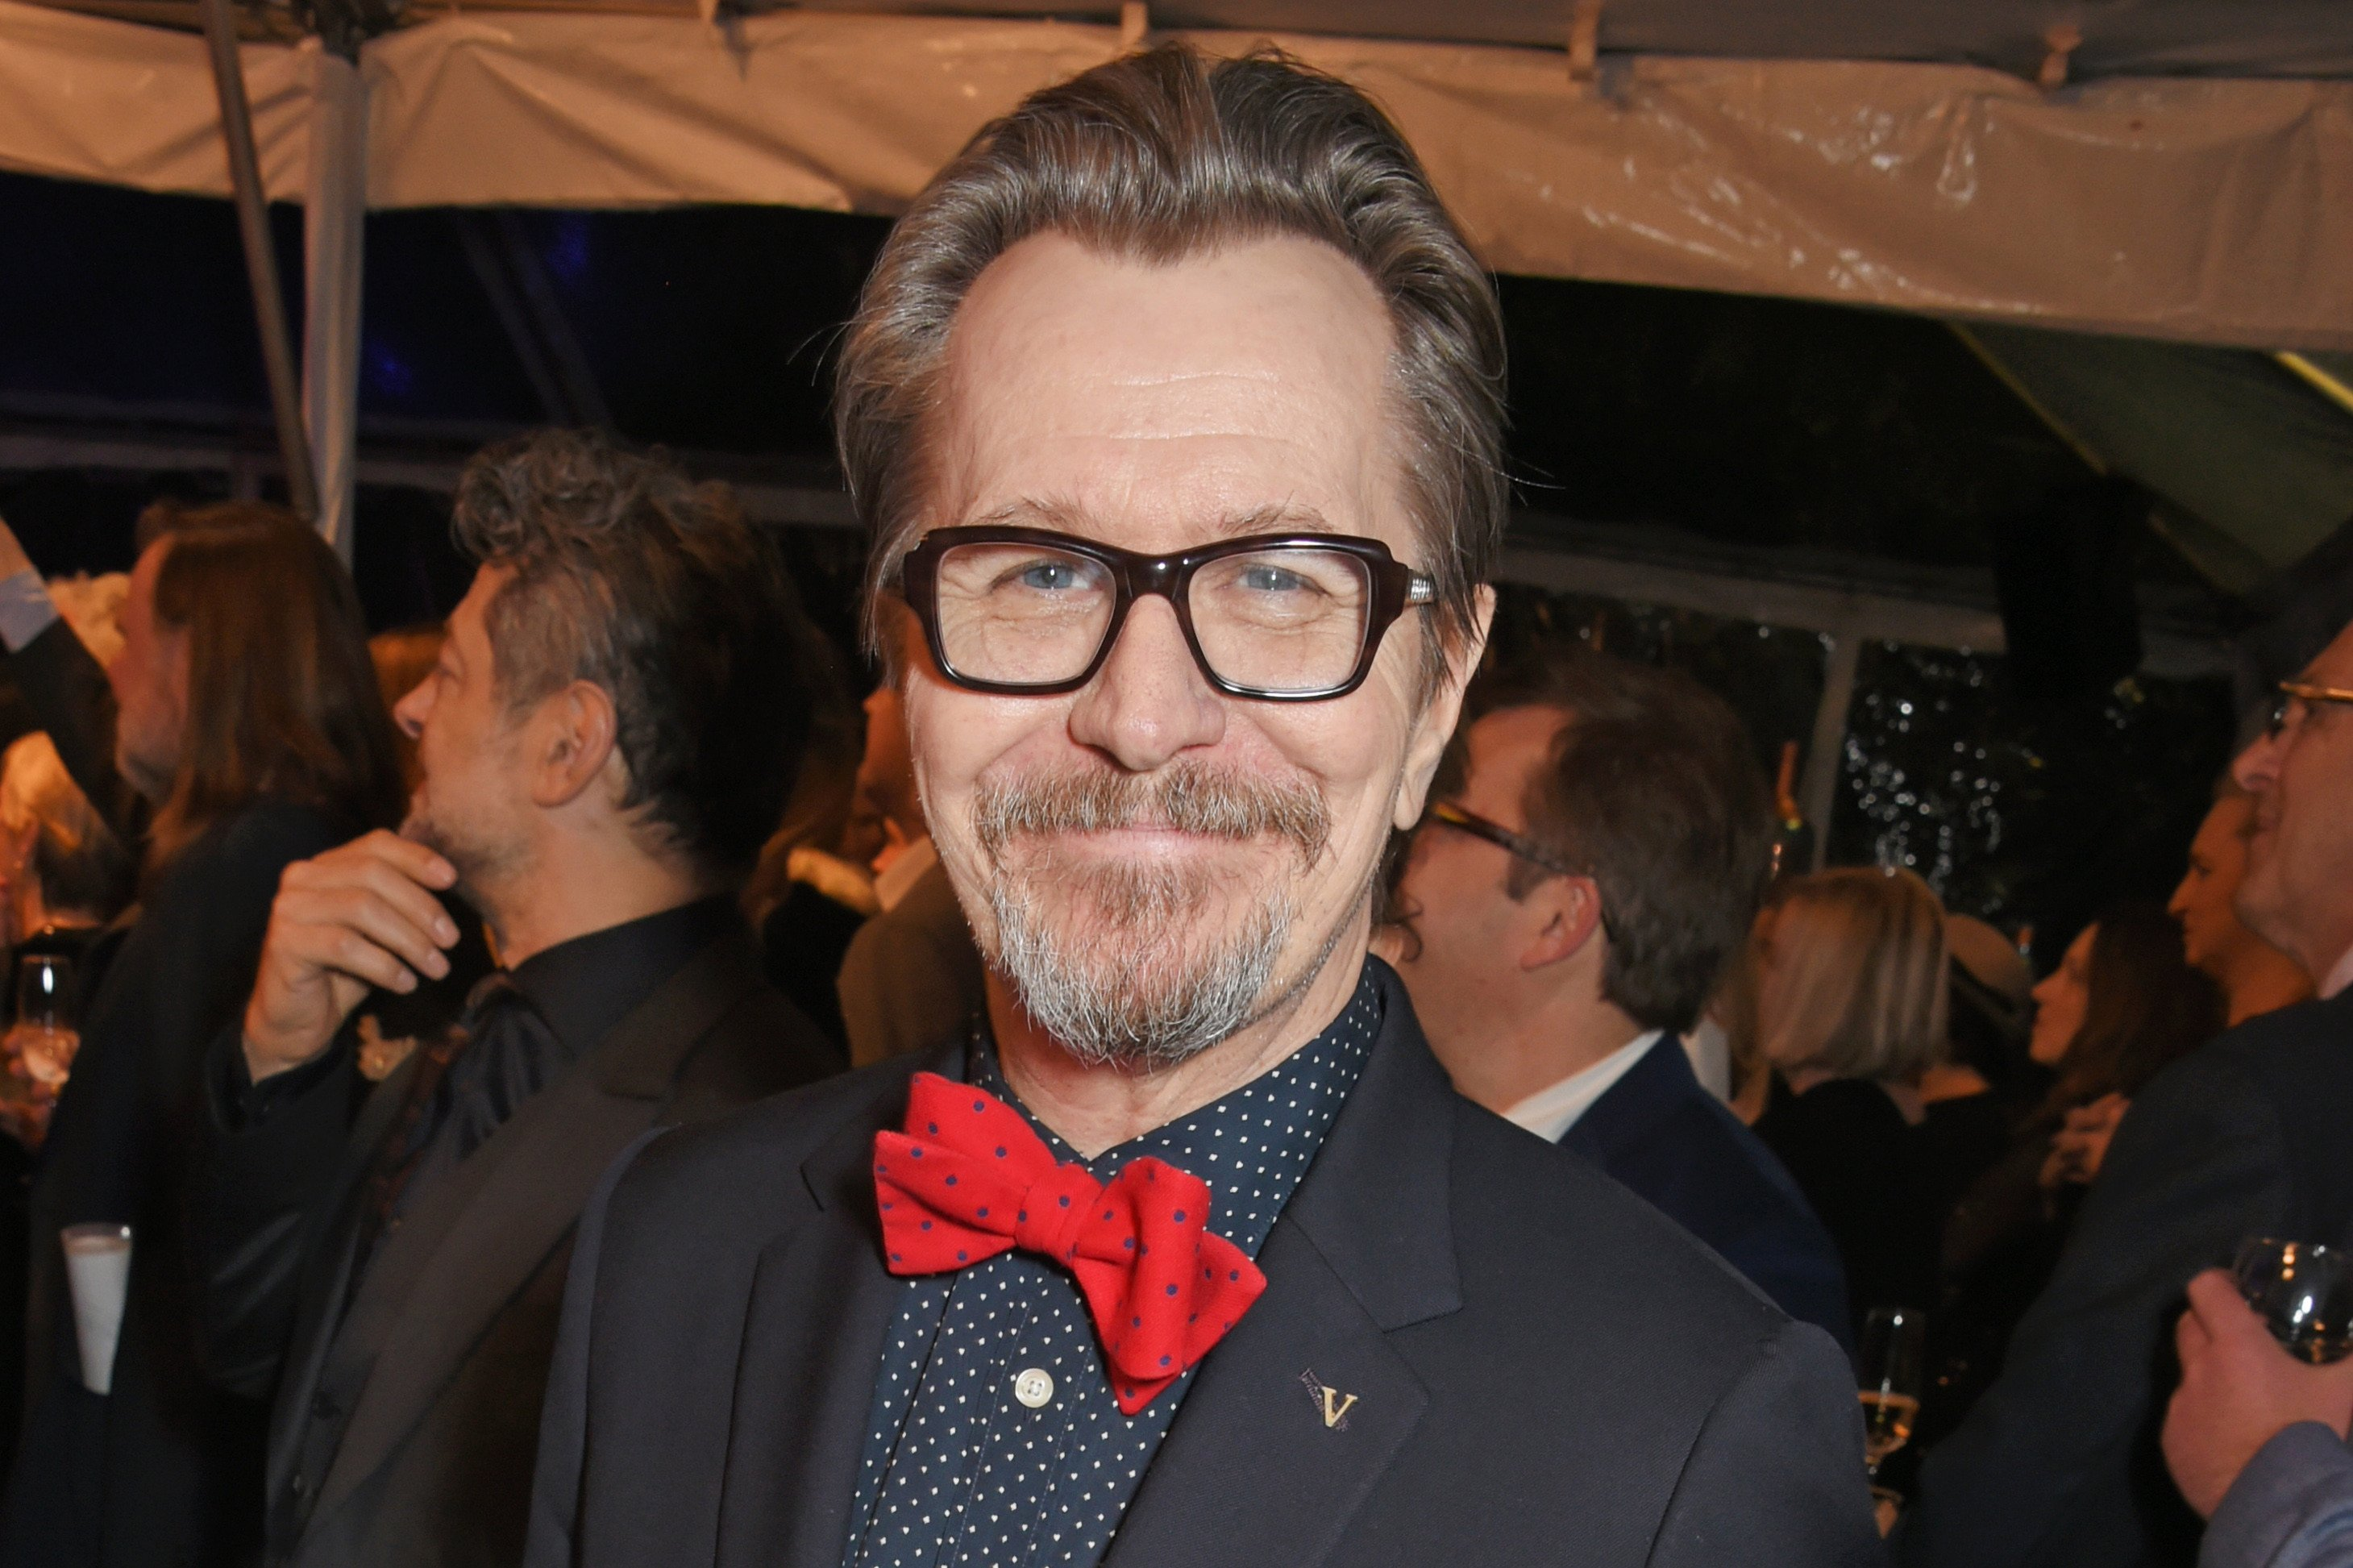 Gary Oldman almost turned down role of Winston Churchill